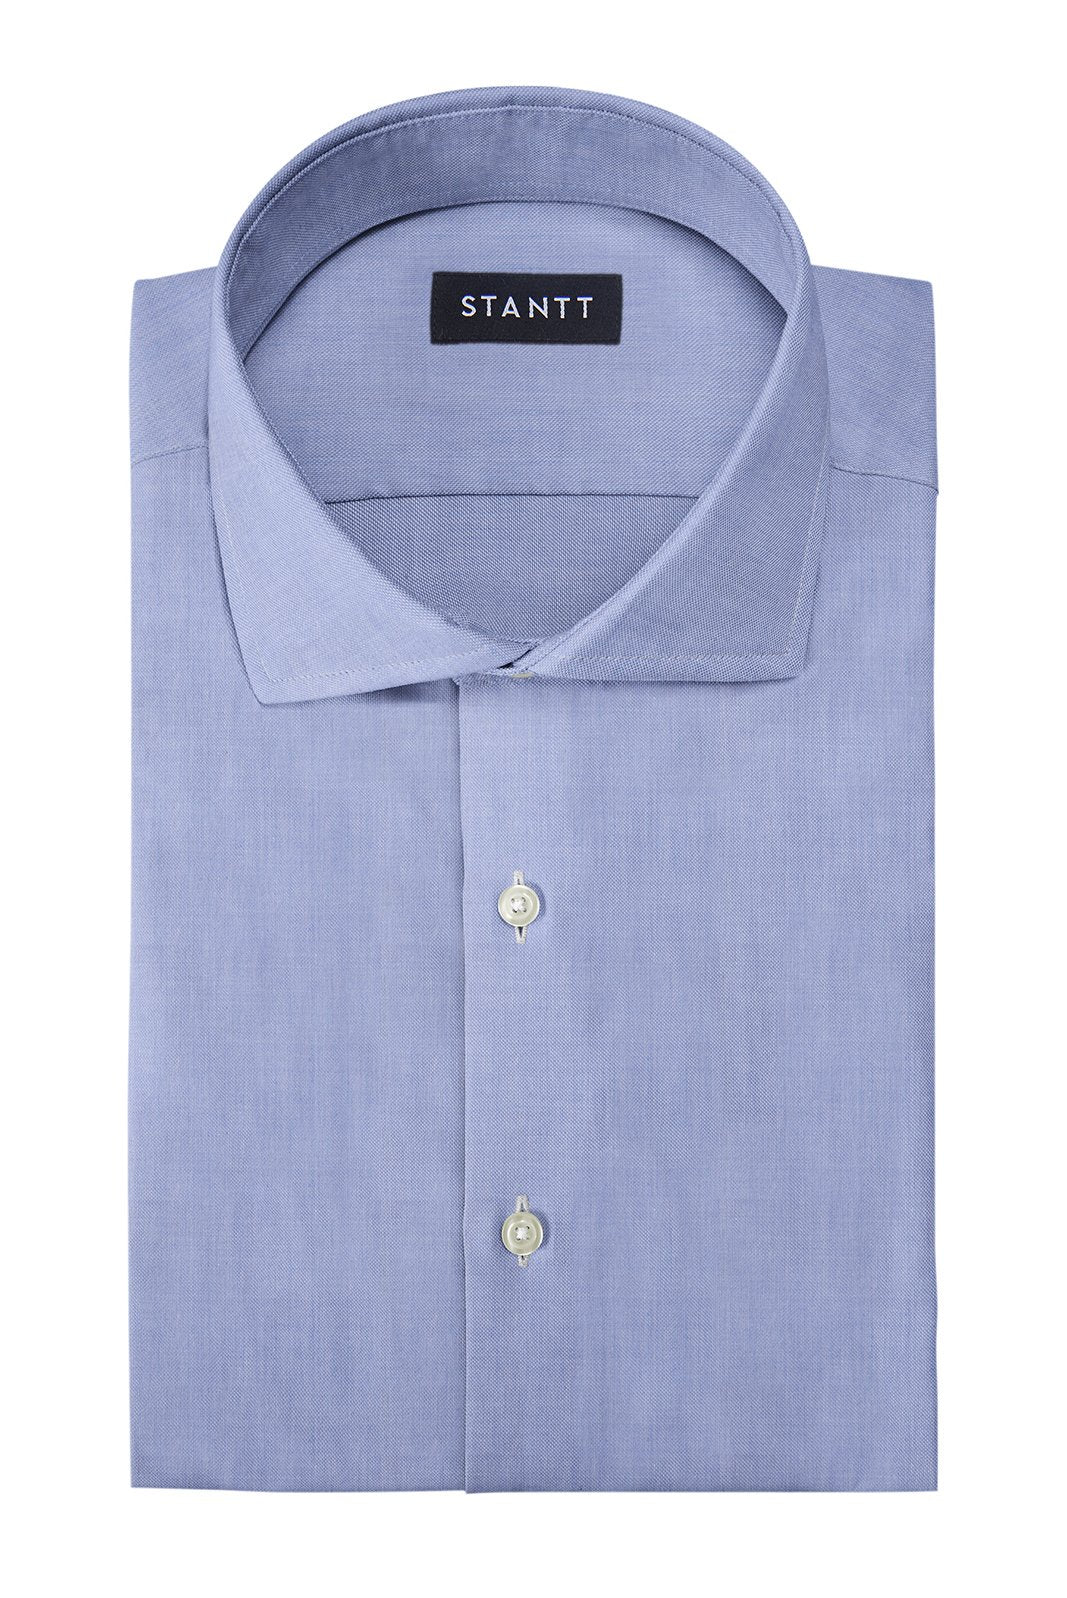 Soft Chambray: Cutaway Collar, French Cuff